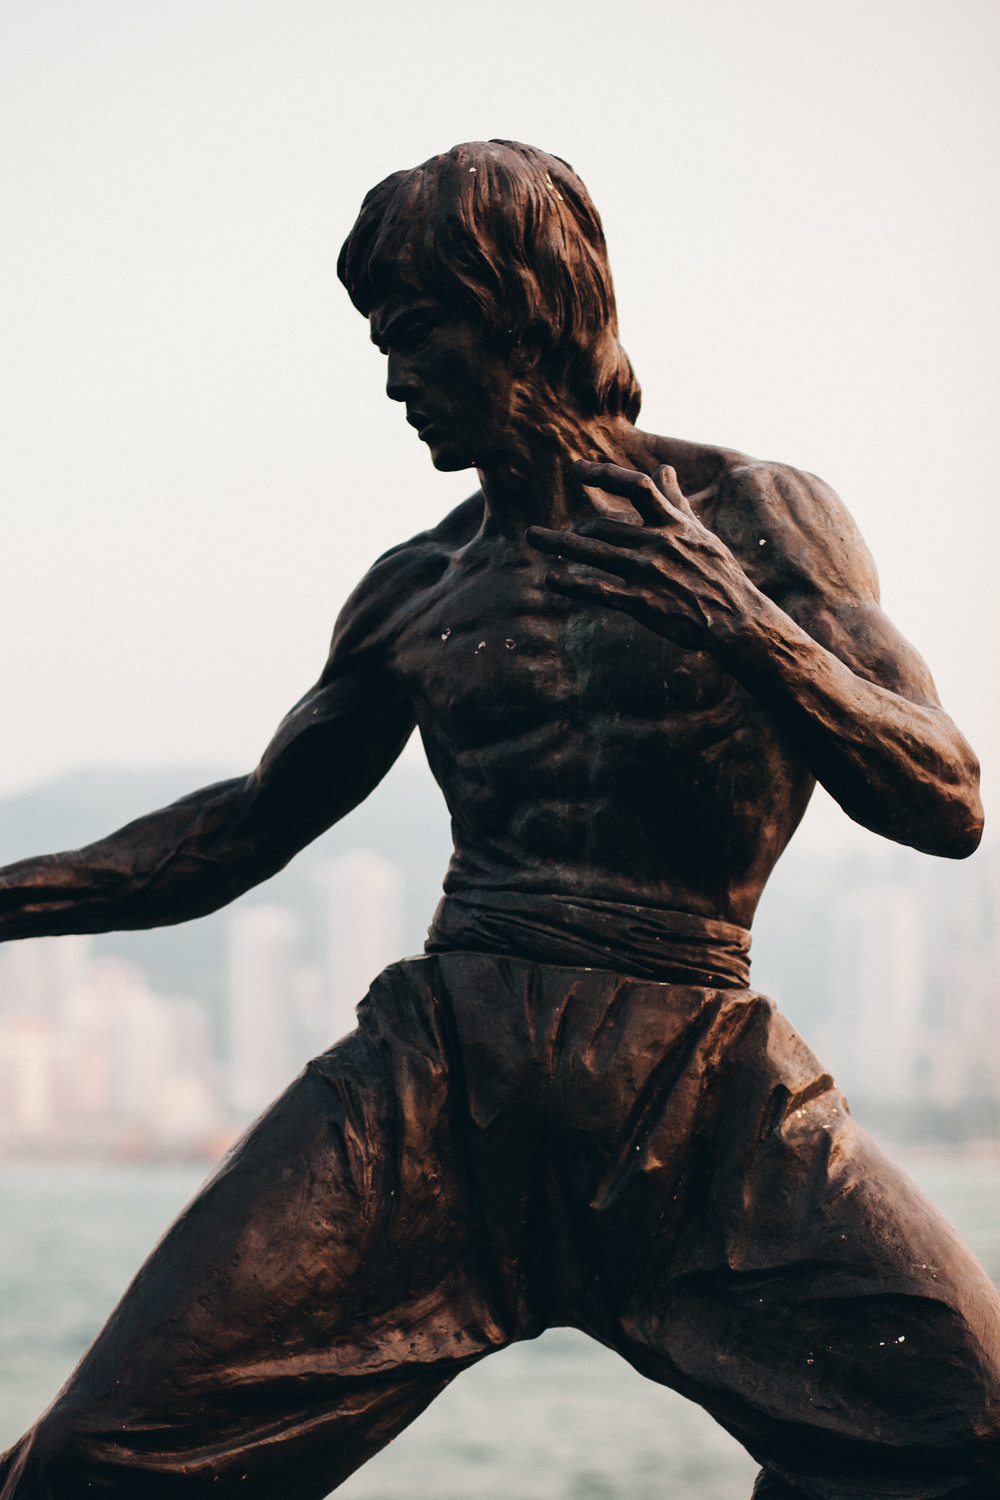 This bronze sculpture honours one of the most iconic martial artists and actors to hail from Hong Kong - none other than the one and only Bruce Lee.